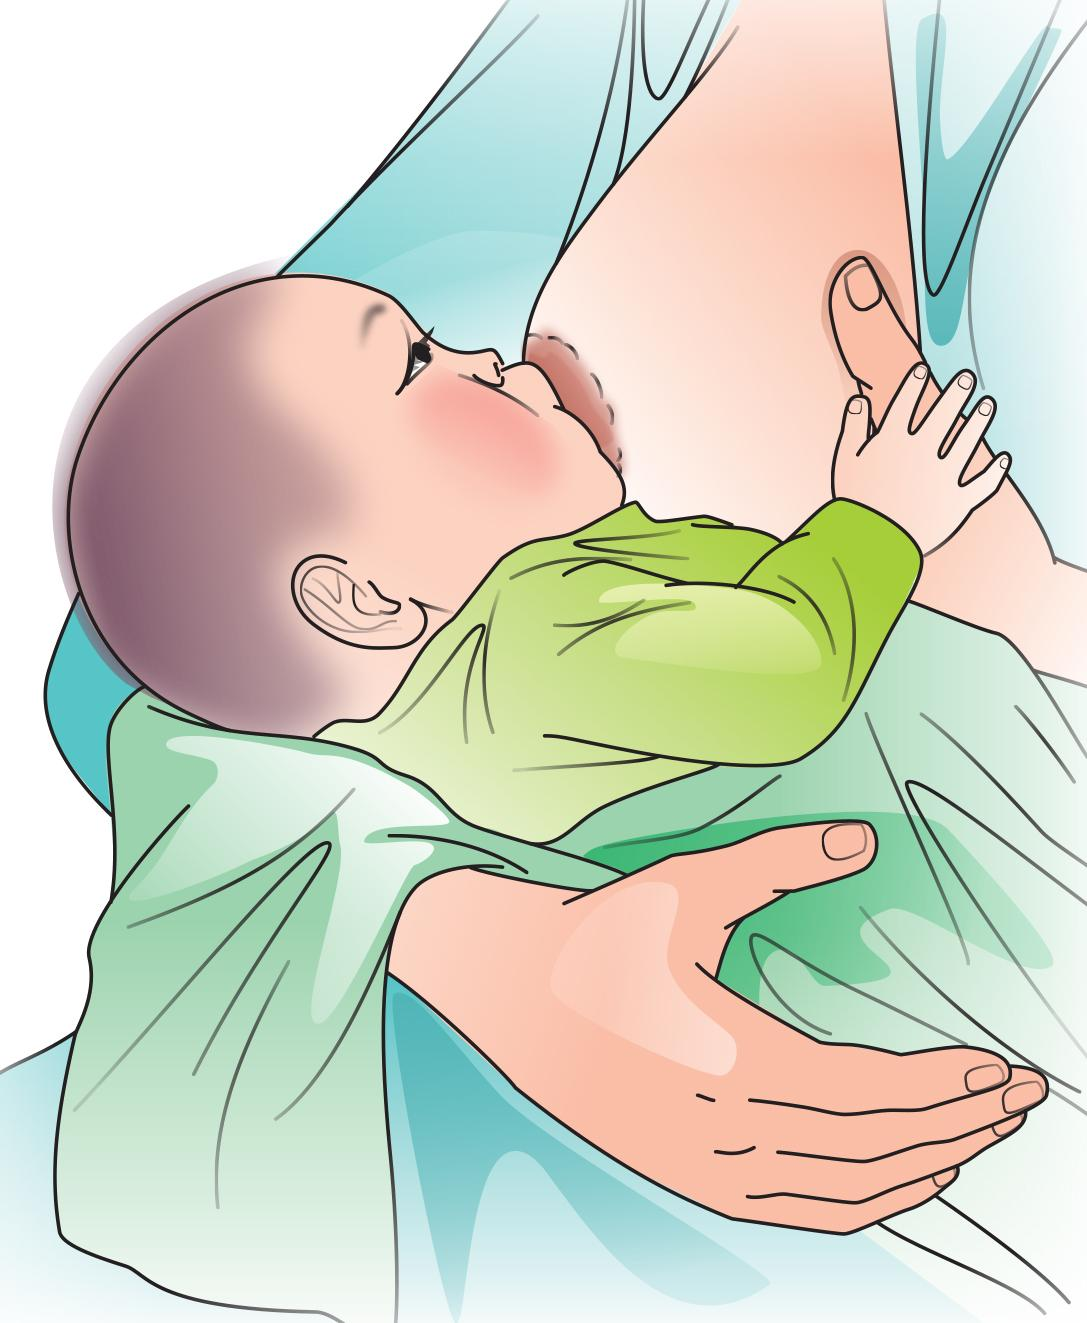 Breastfeeding - Breastfeeding attachment 0-6 mo - 06 - Kyrgyz Republic